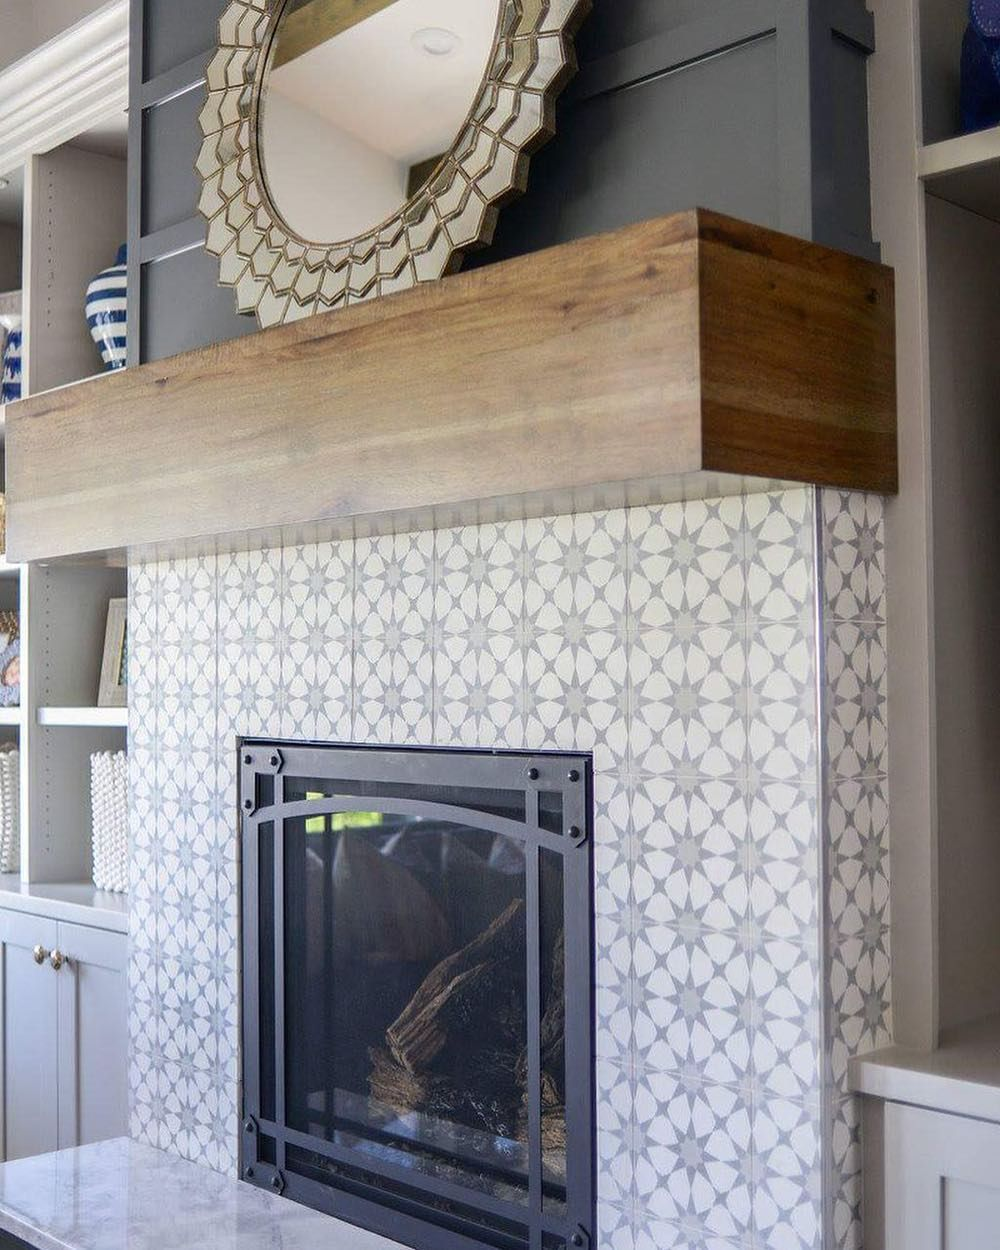 24 Likes 1 Comments Cement Tile Shop Cementtileshop On Instagram We Love This Big B Fireplace Tile Small Apartment Living Room Fireplace Tile Surround